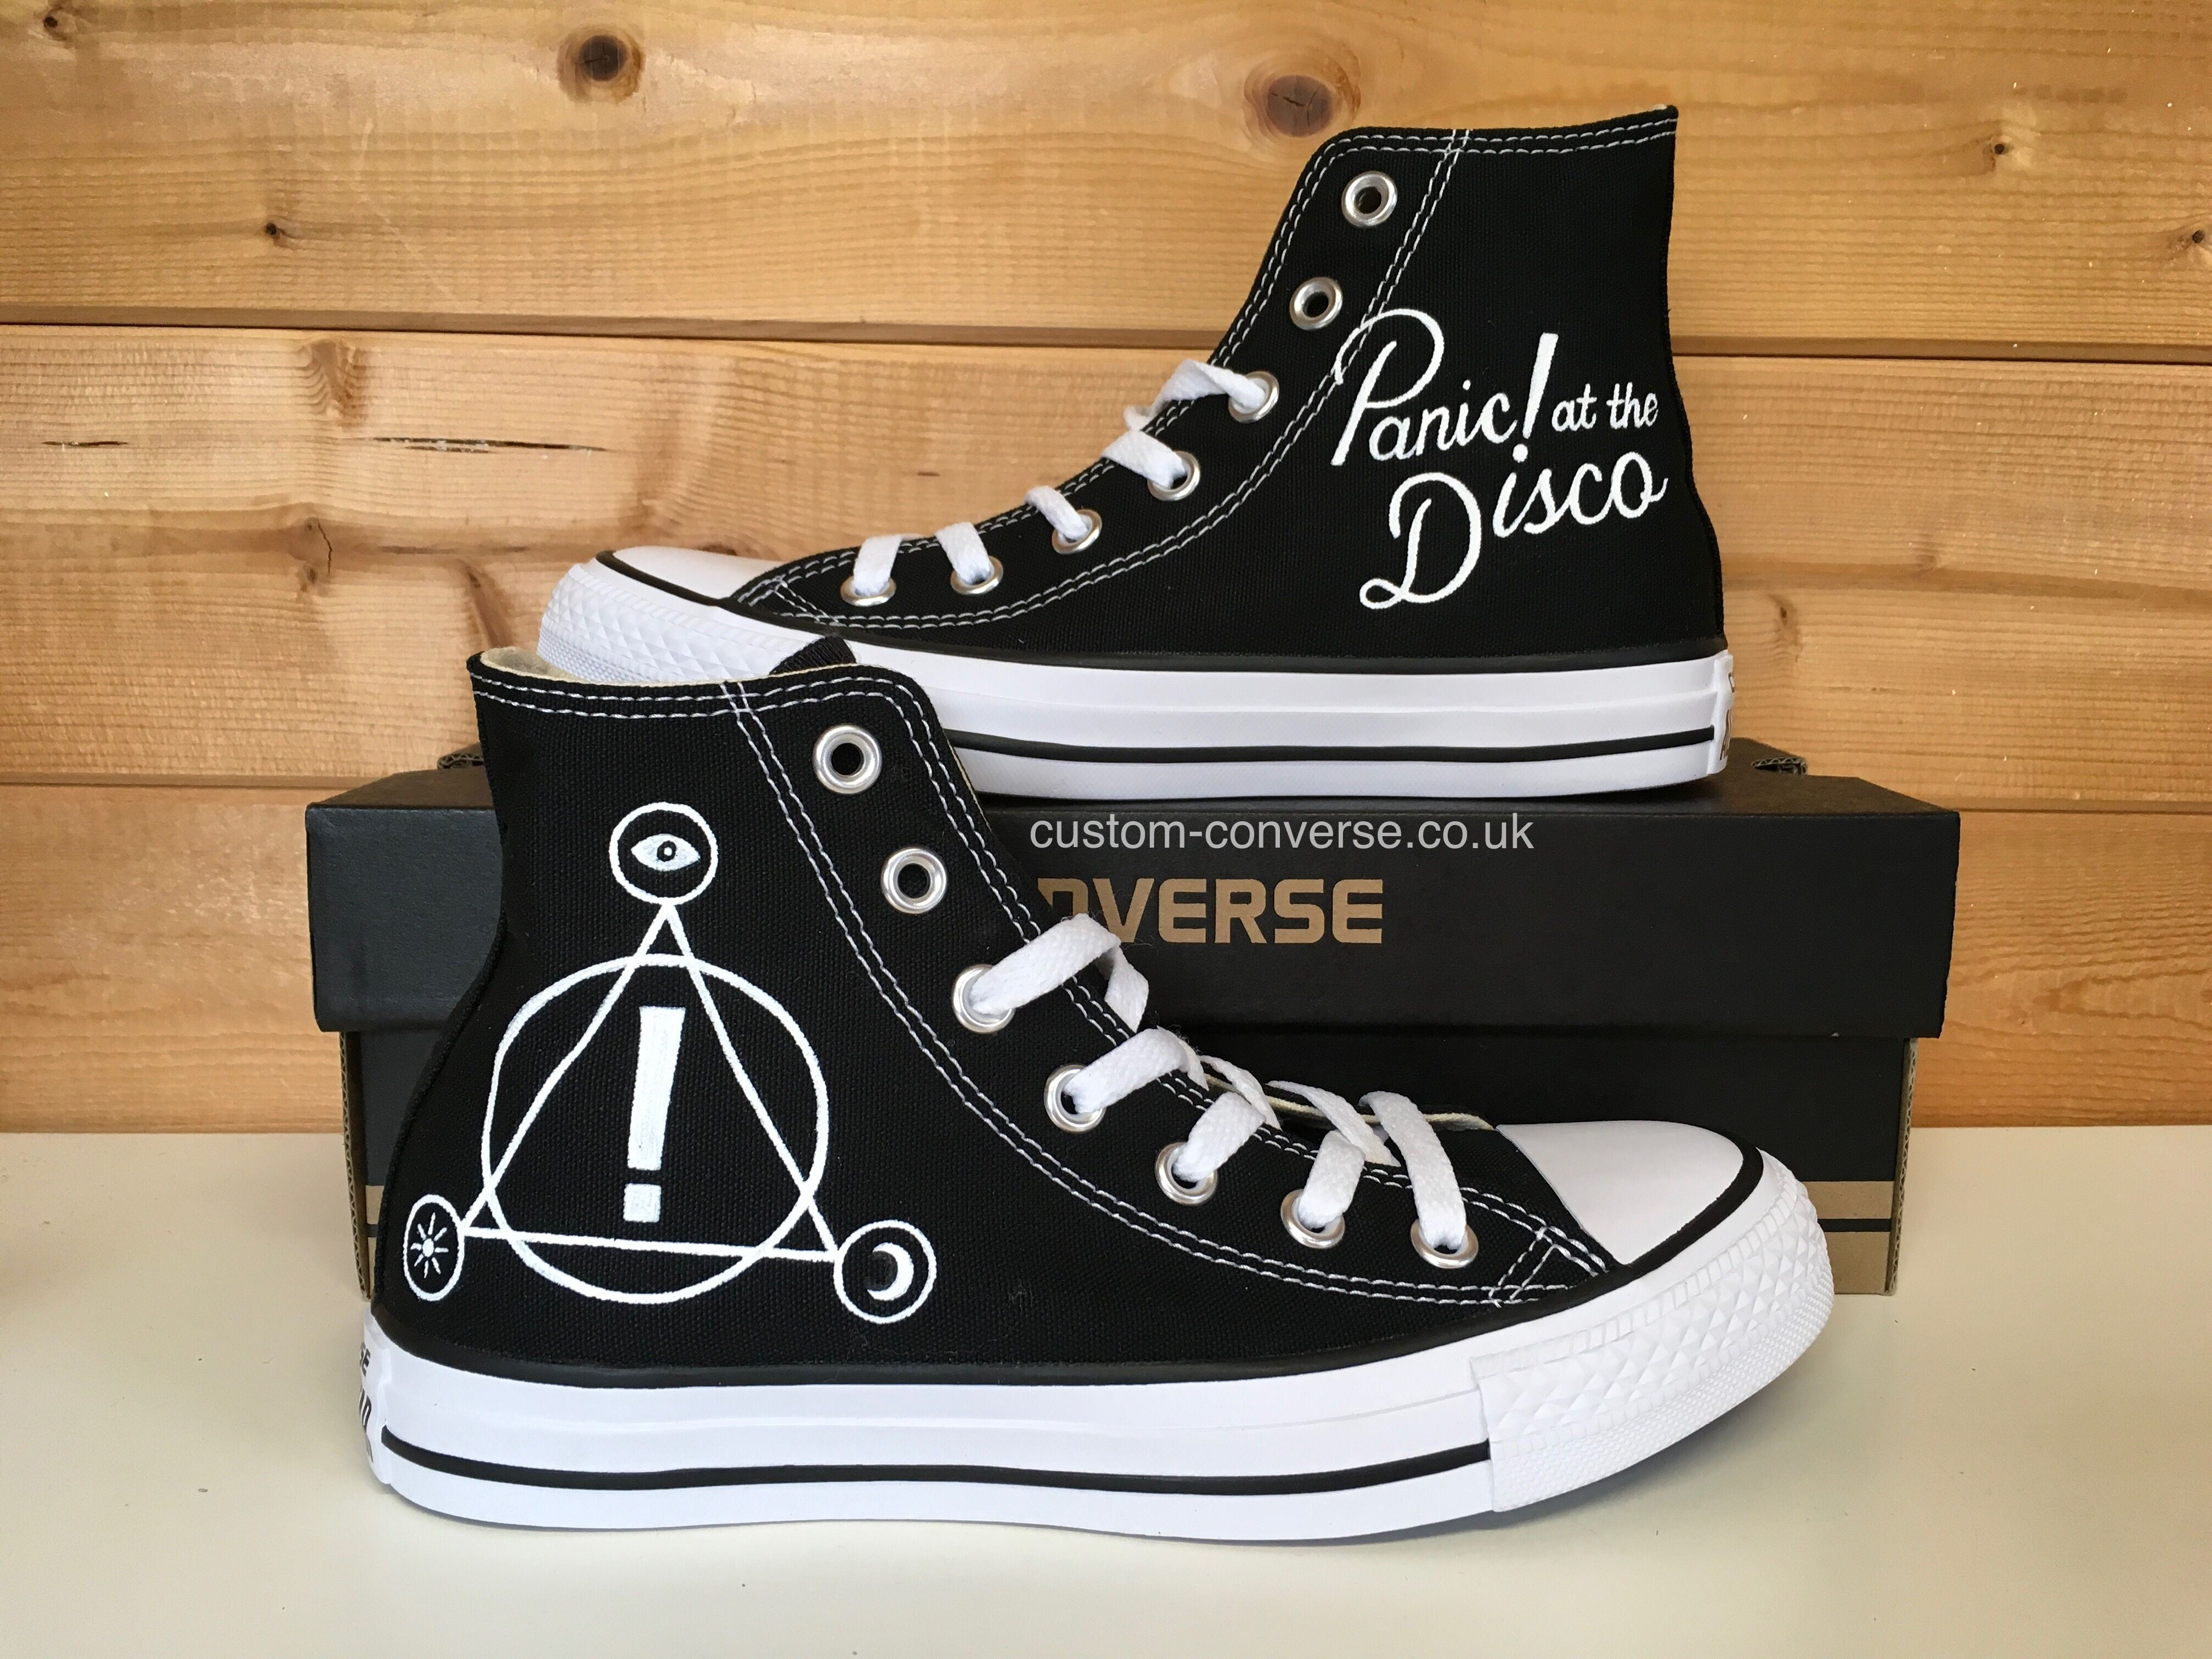 0b2aed0070fb At the Disco Converse  panicatthedisco  converse  customconverse